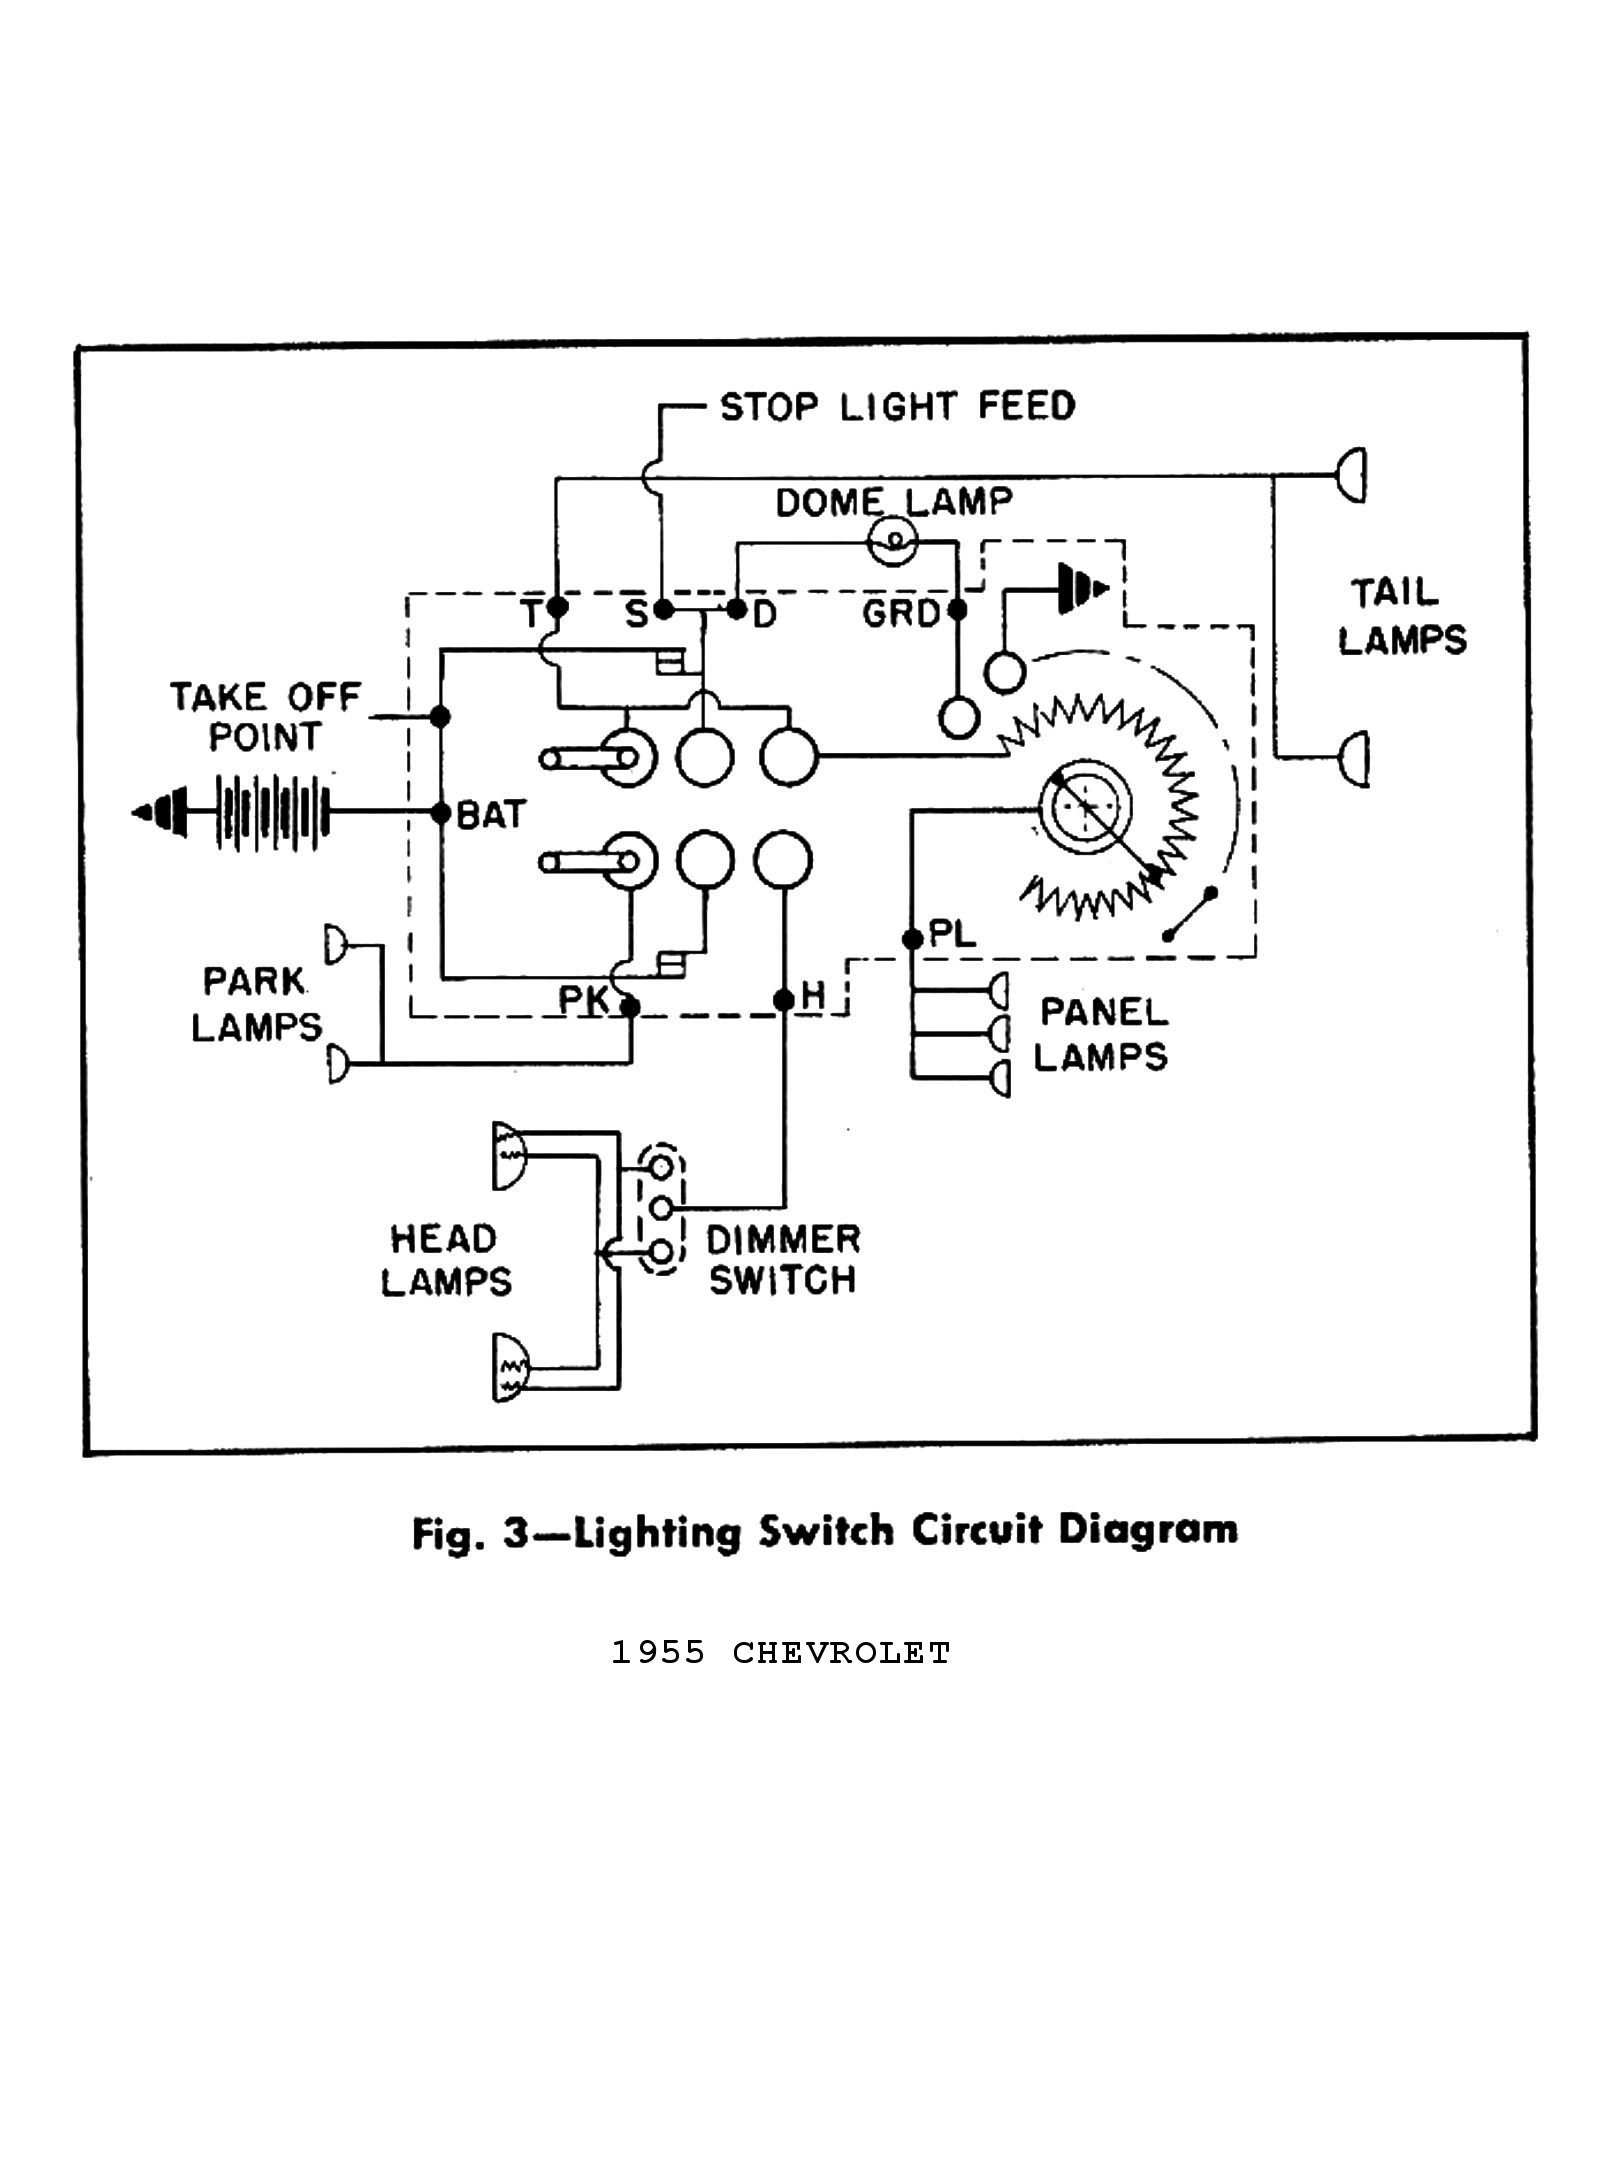 ... 1955 Lighting Switch Circuit